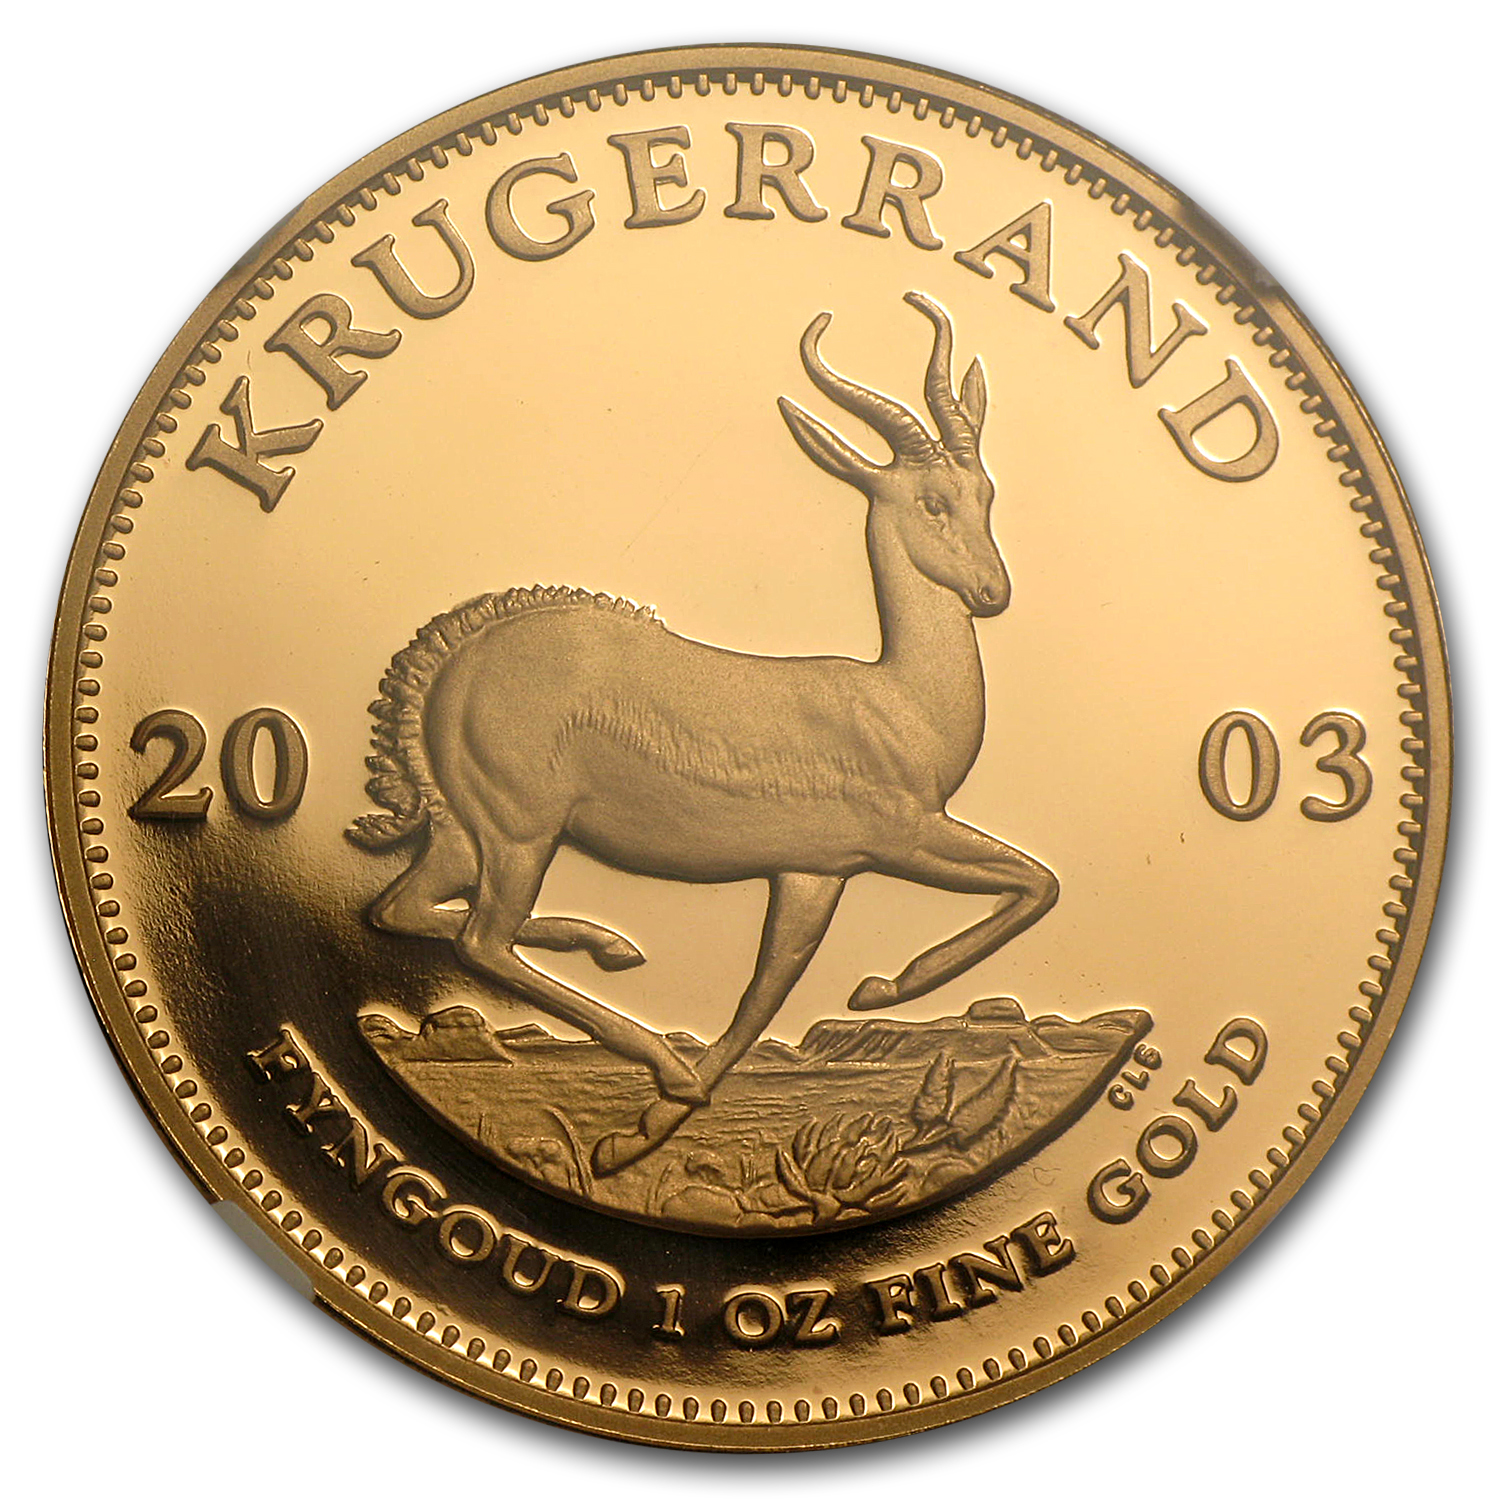 2003 South Africa 1 oz Gold Krugerrand PF-69 NGC